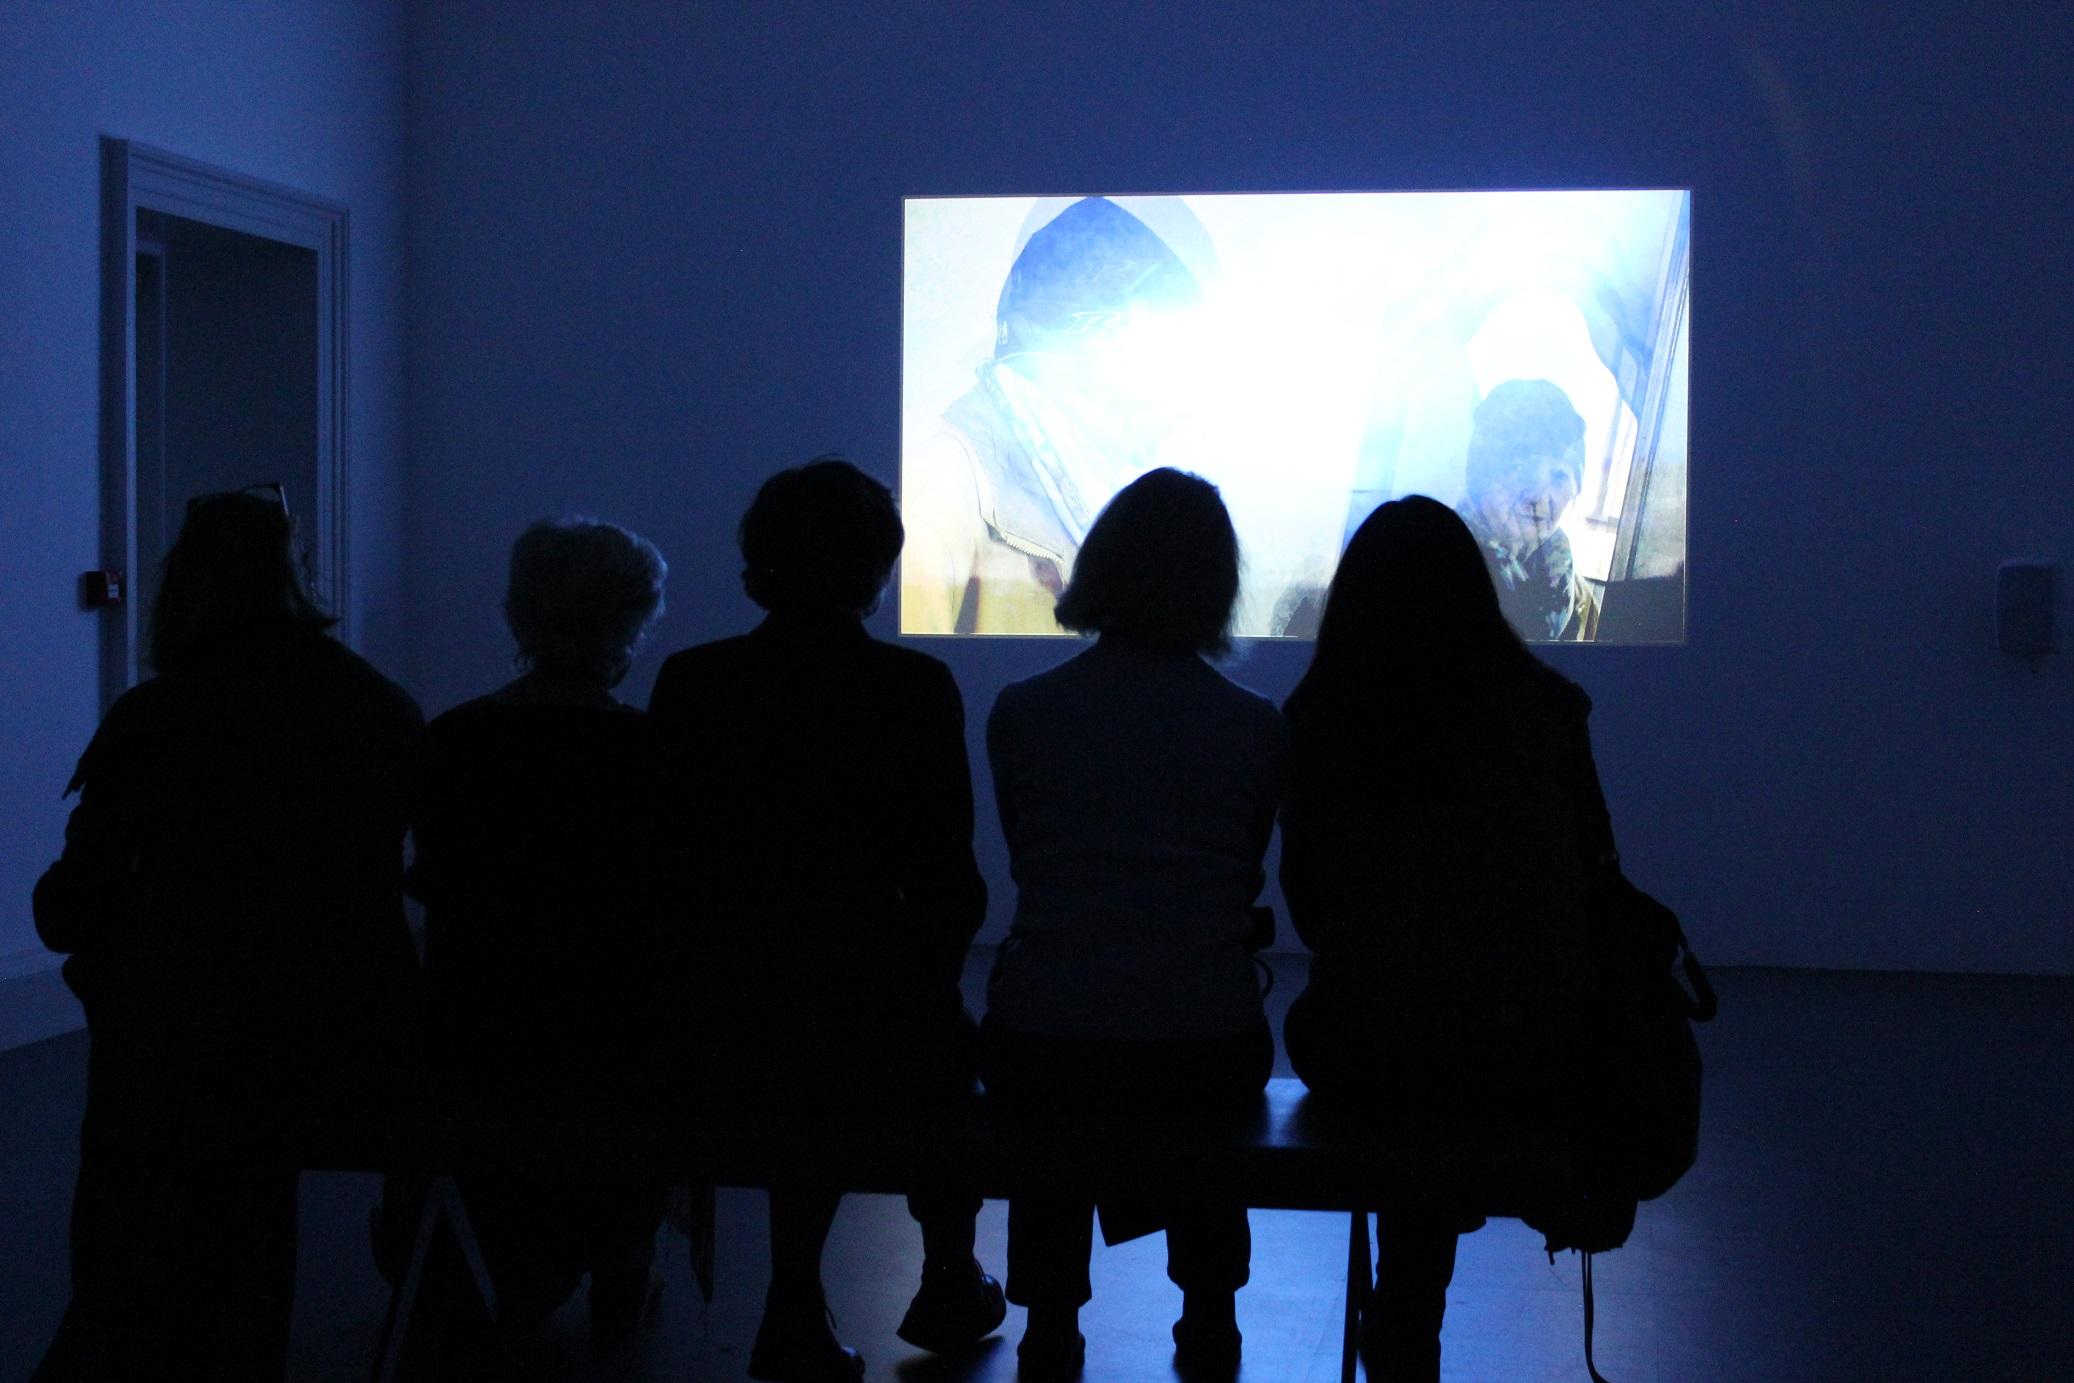 Marie Brett and Kevin O'Shanahan, E.gress, HD video still, 2013, Courtesy of the artist